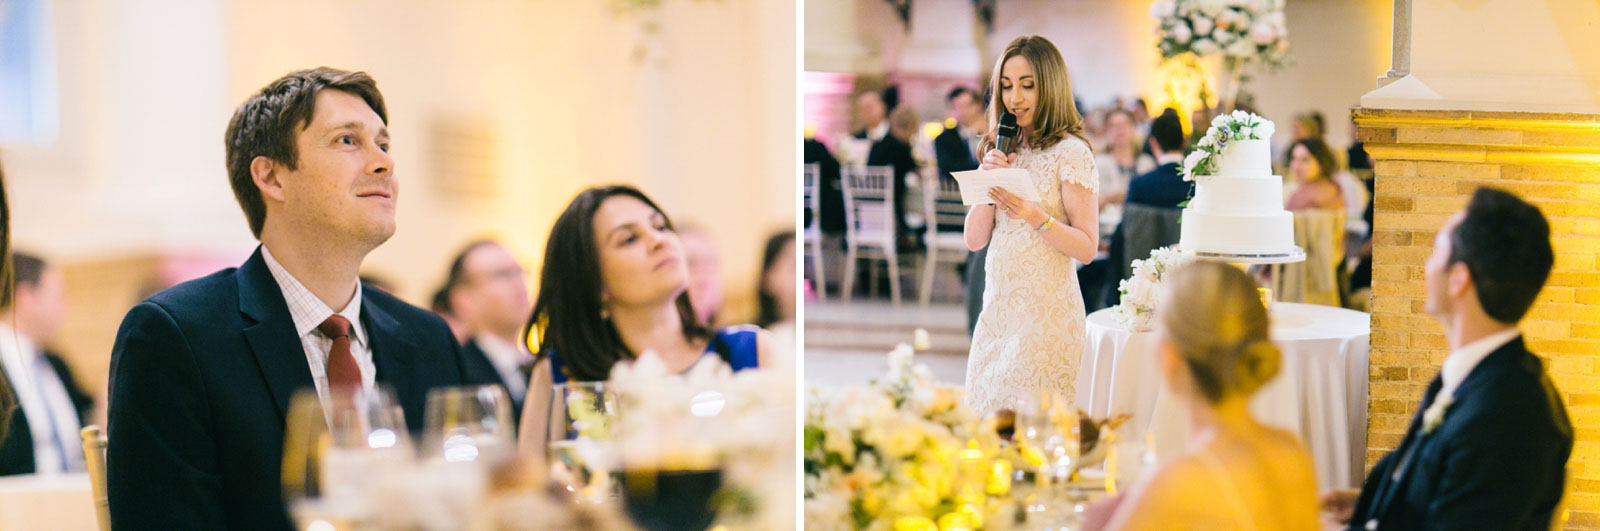 candid guest reactions during maid of honor speech at Boston Public Library wedding reception